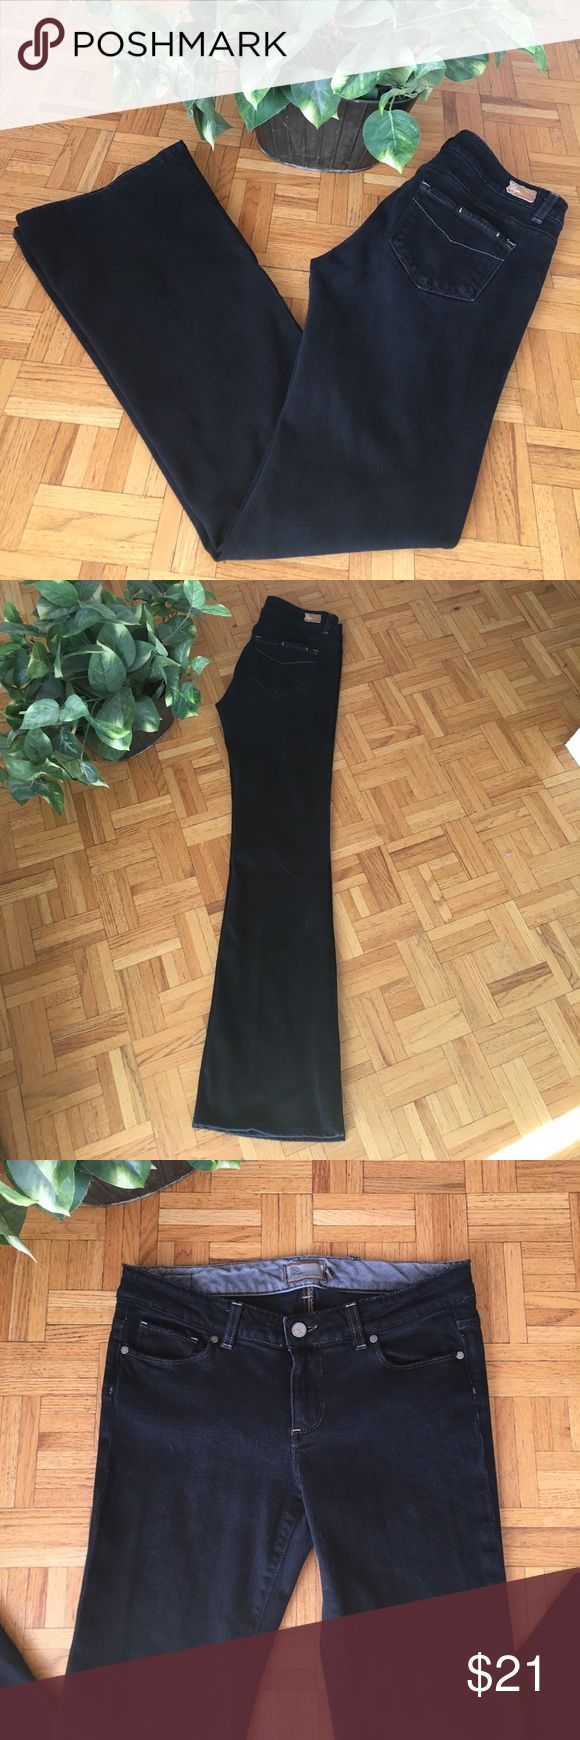 Black Paige Jeans Size 29 inseam 31 inches! Black Paige jeans Hollywood Hills! Inseam is 31 inches! Paige Jeans Jeans